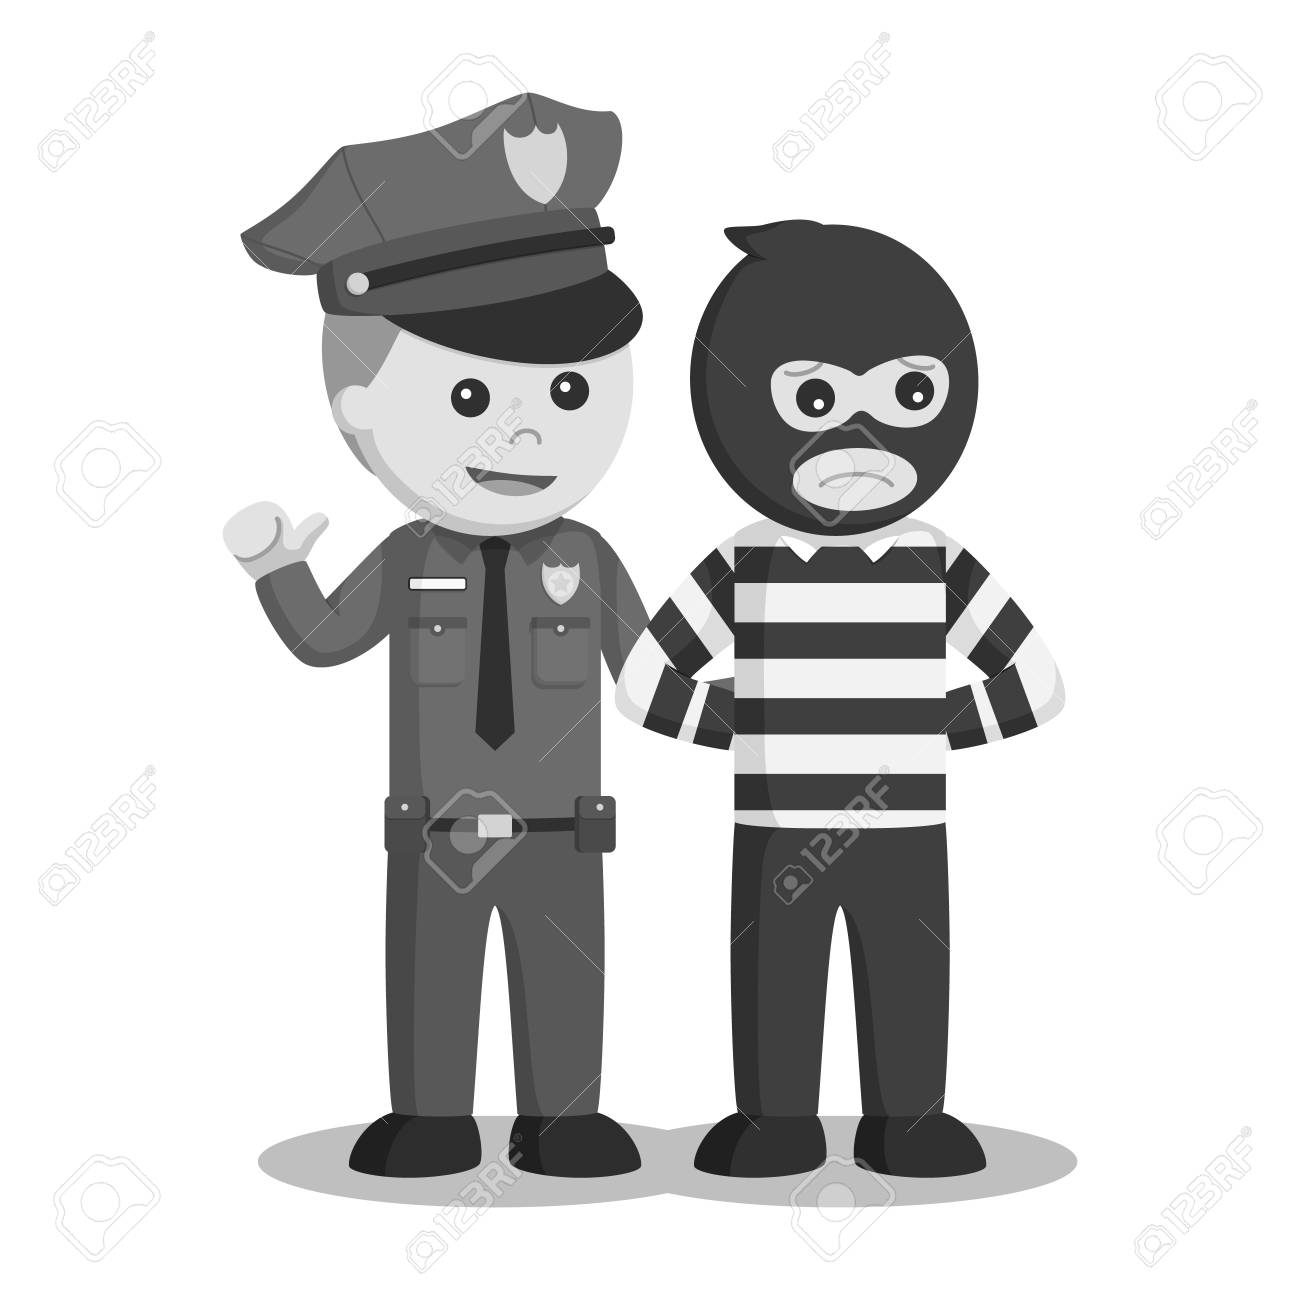 police officer arrest bank thief black and white style royalty free